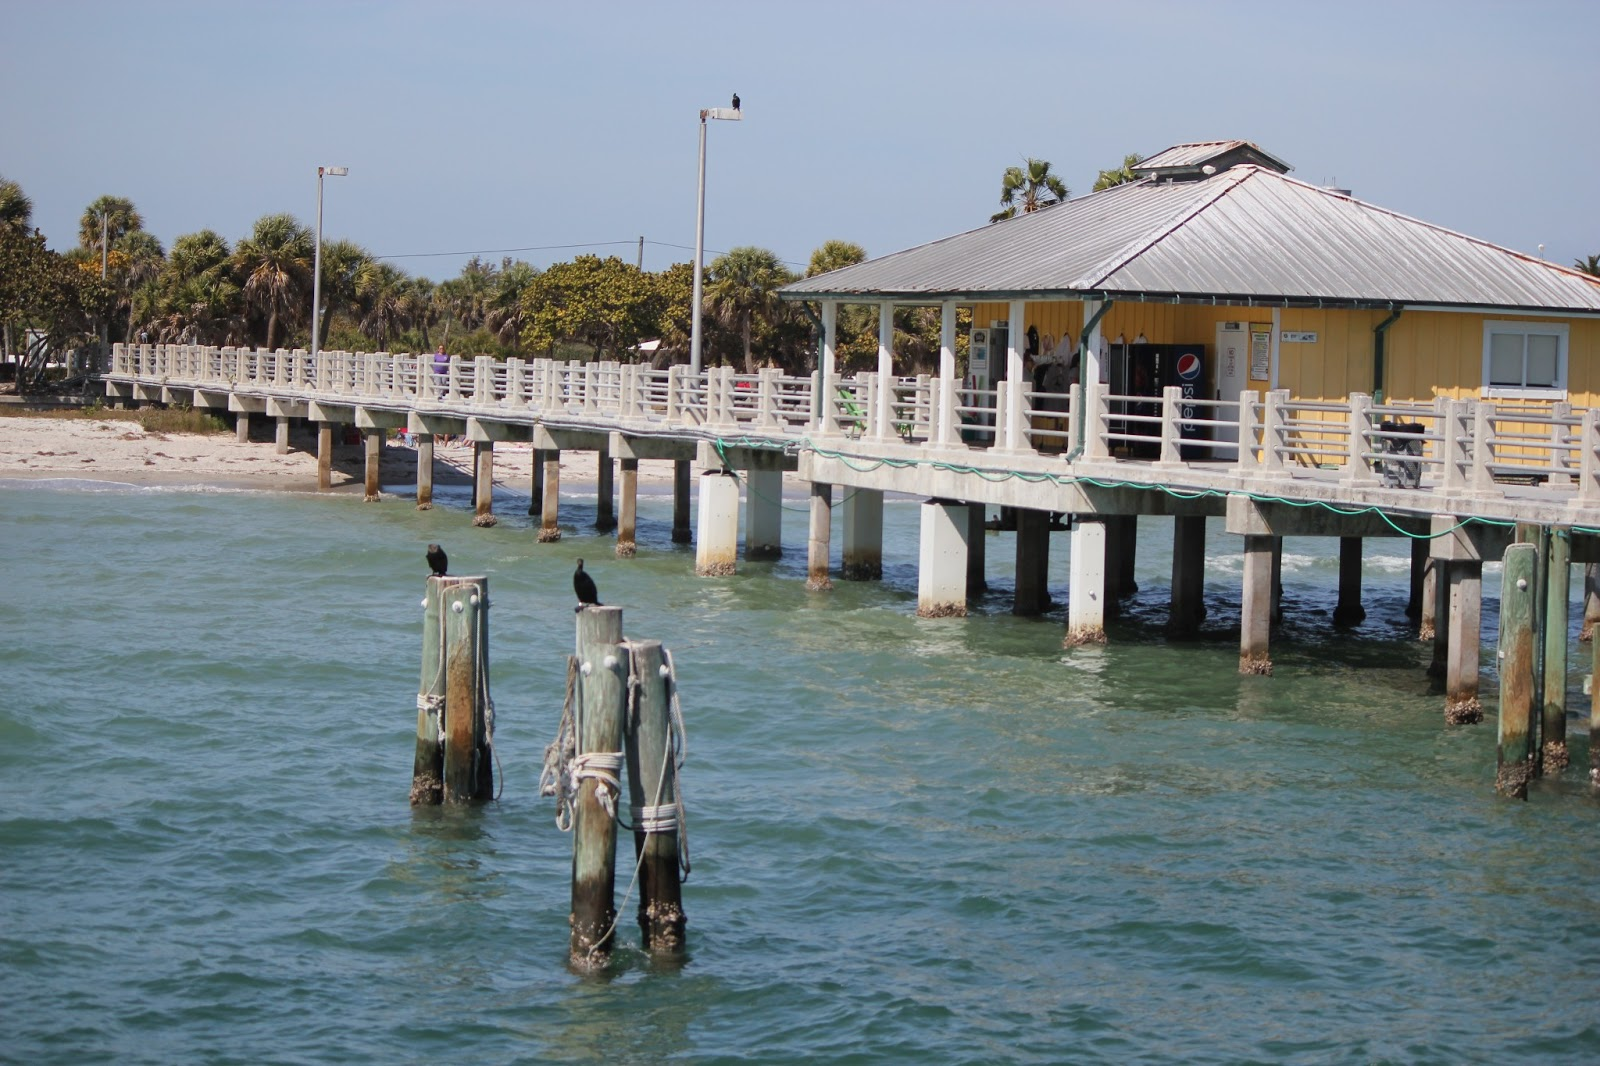 Pinellas county parks fort de soto park pretty bait and snack shop off the bay pier nvjuhfo Image collections